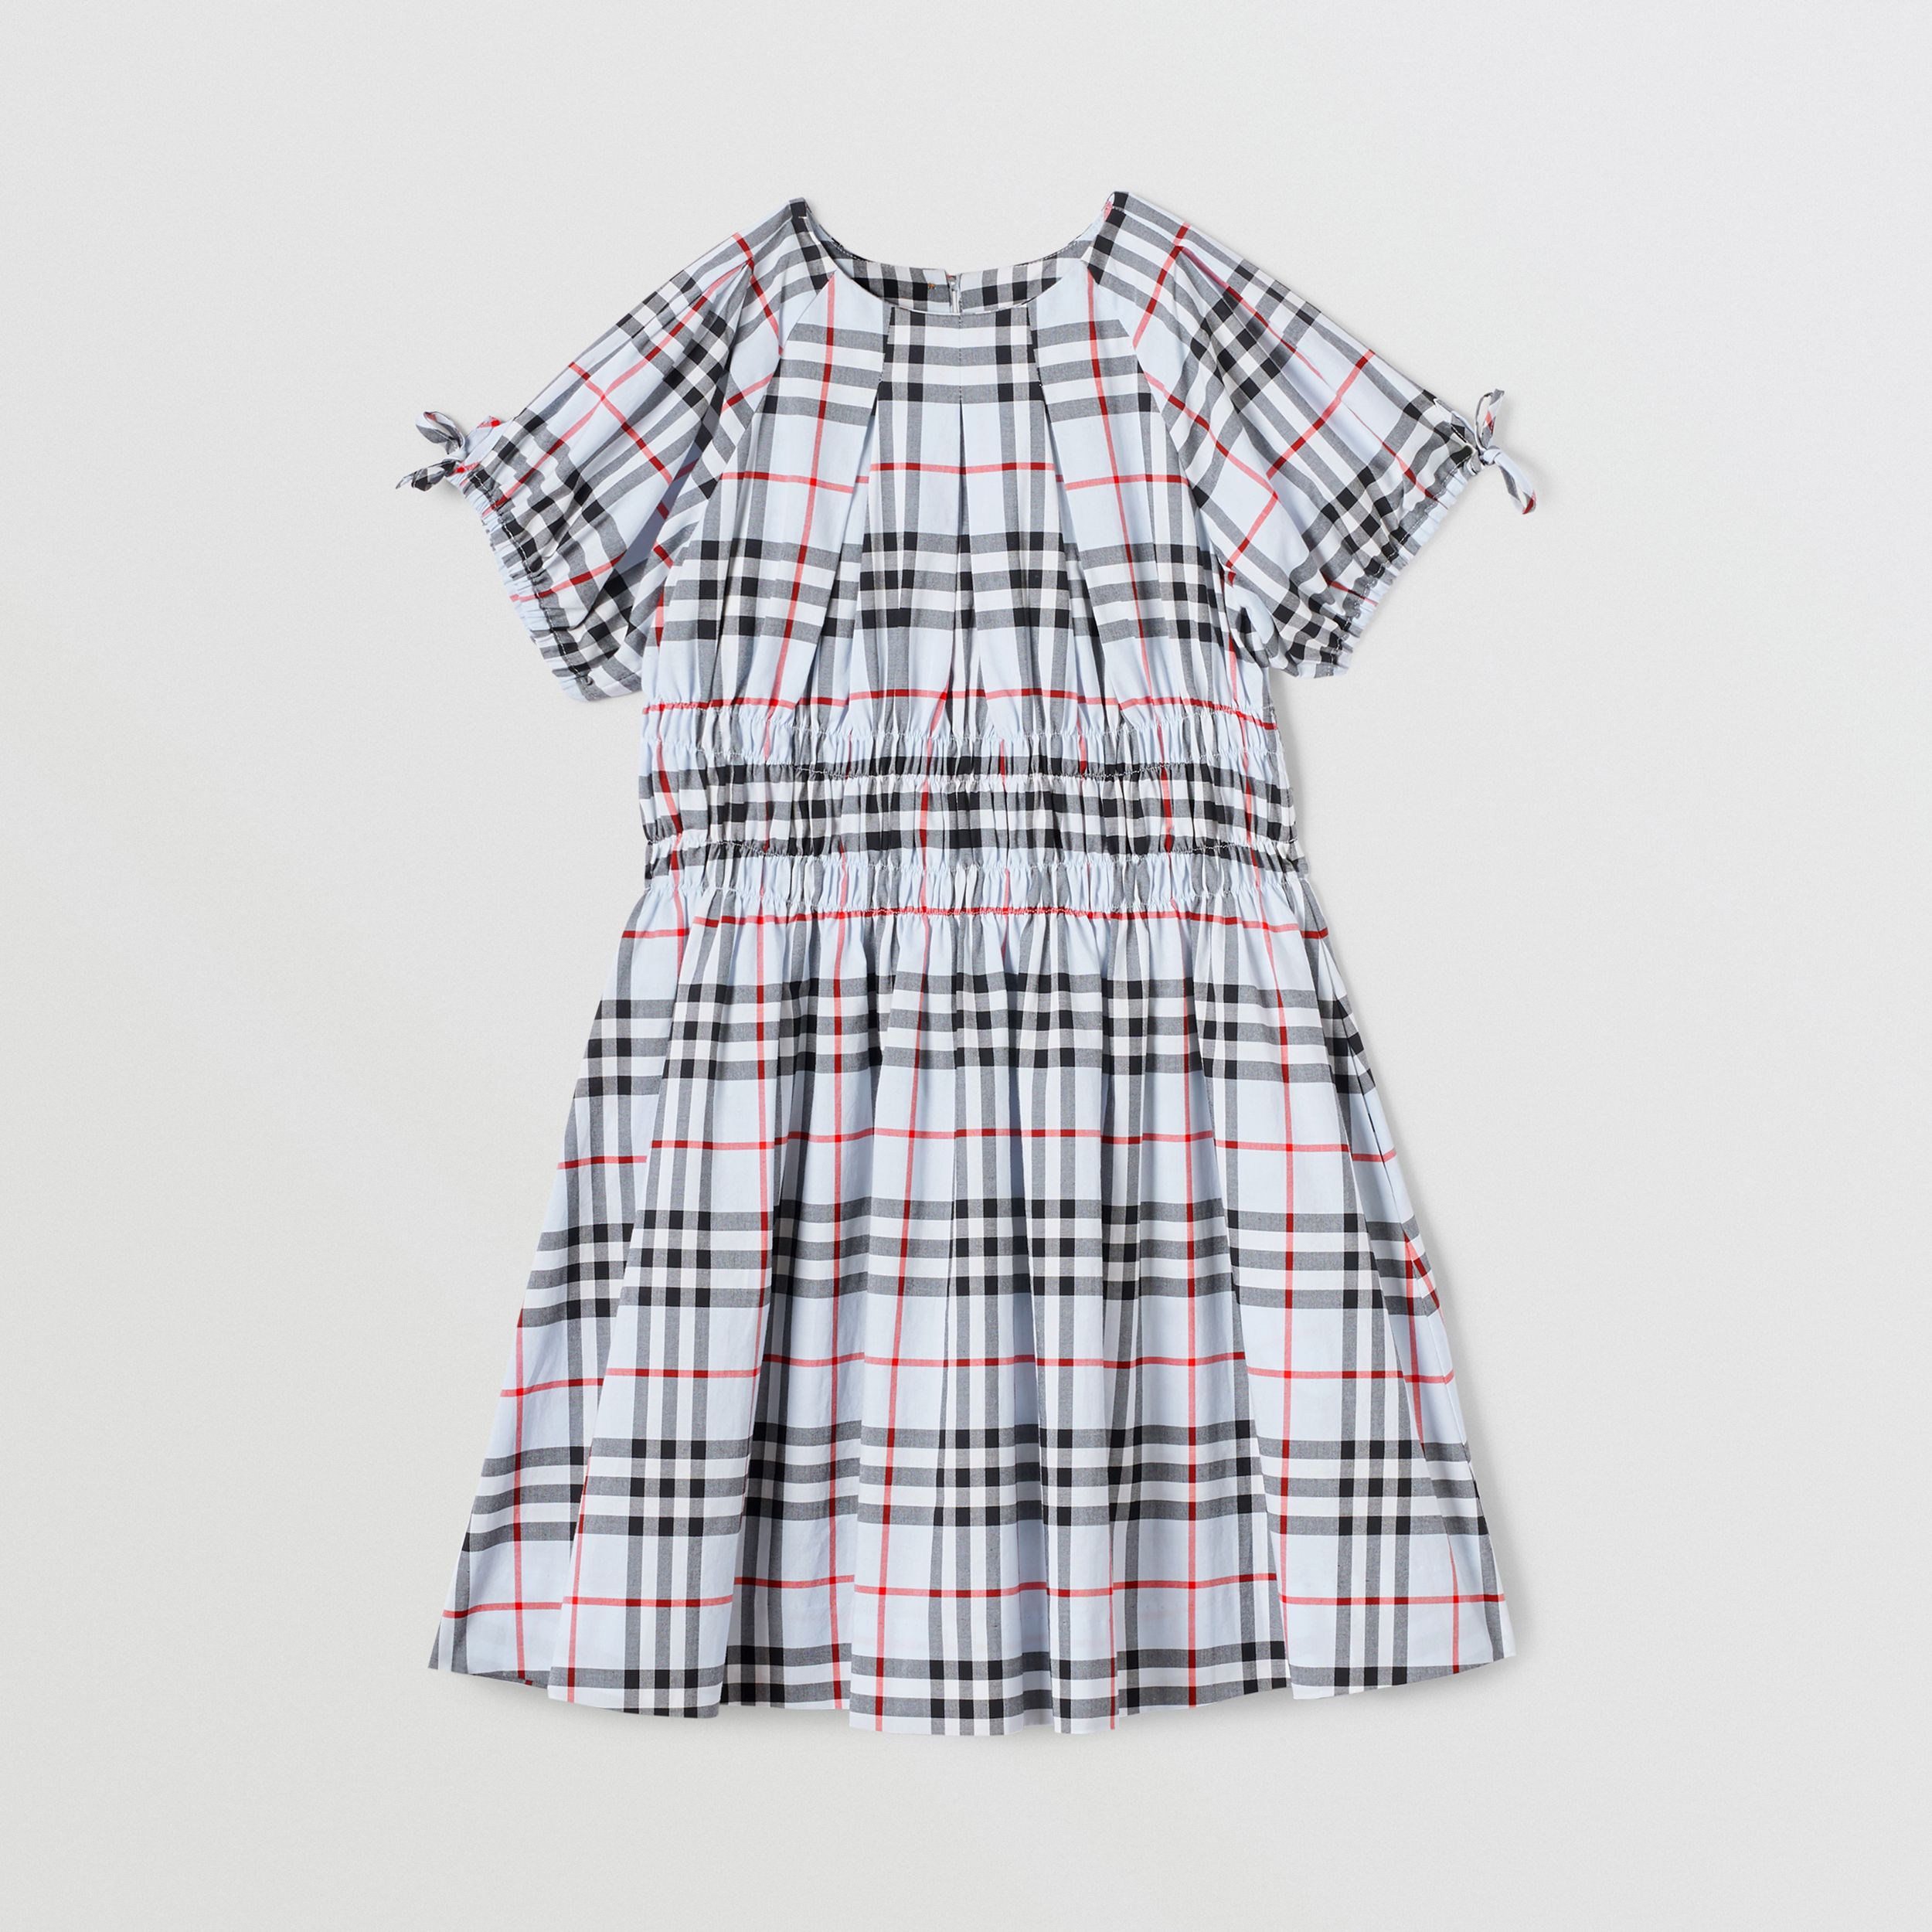 Ruched Panel Vintage Check Cotton Dress in Pale Blue | Burberry Australia - 1